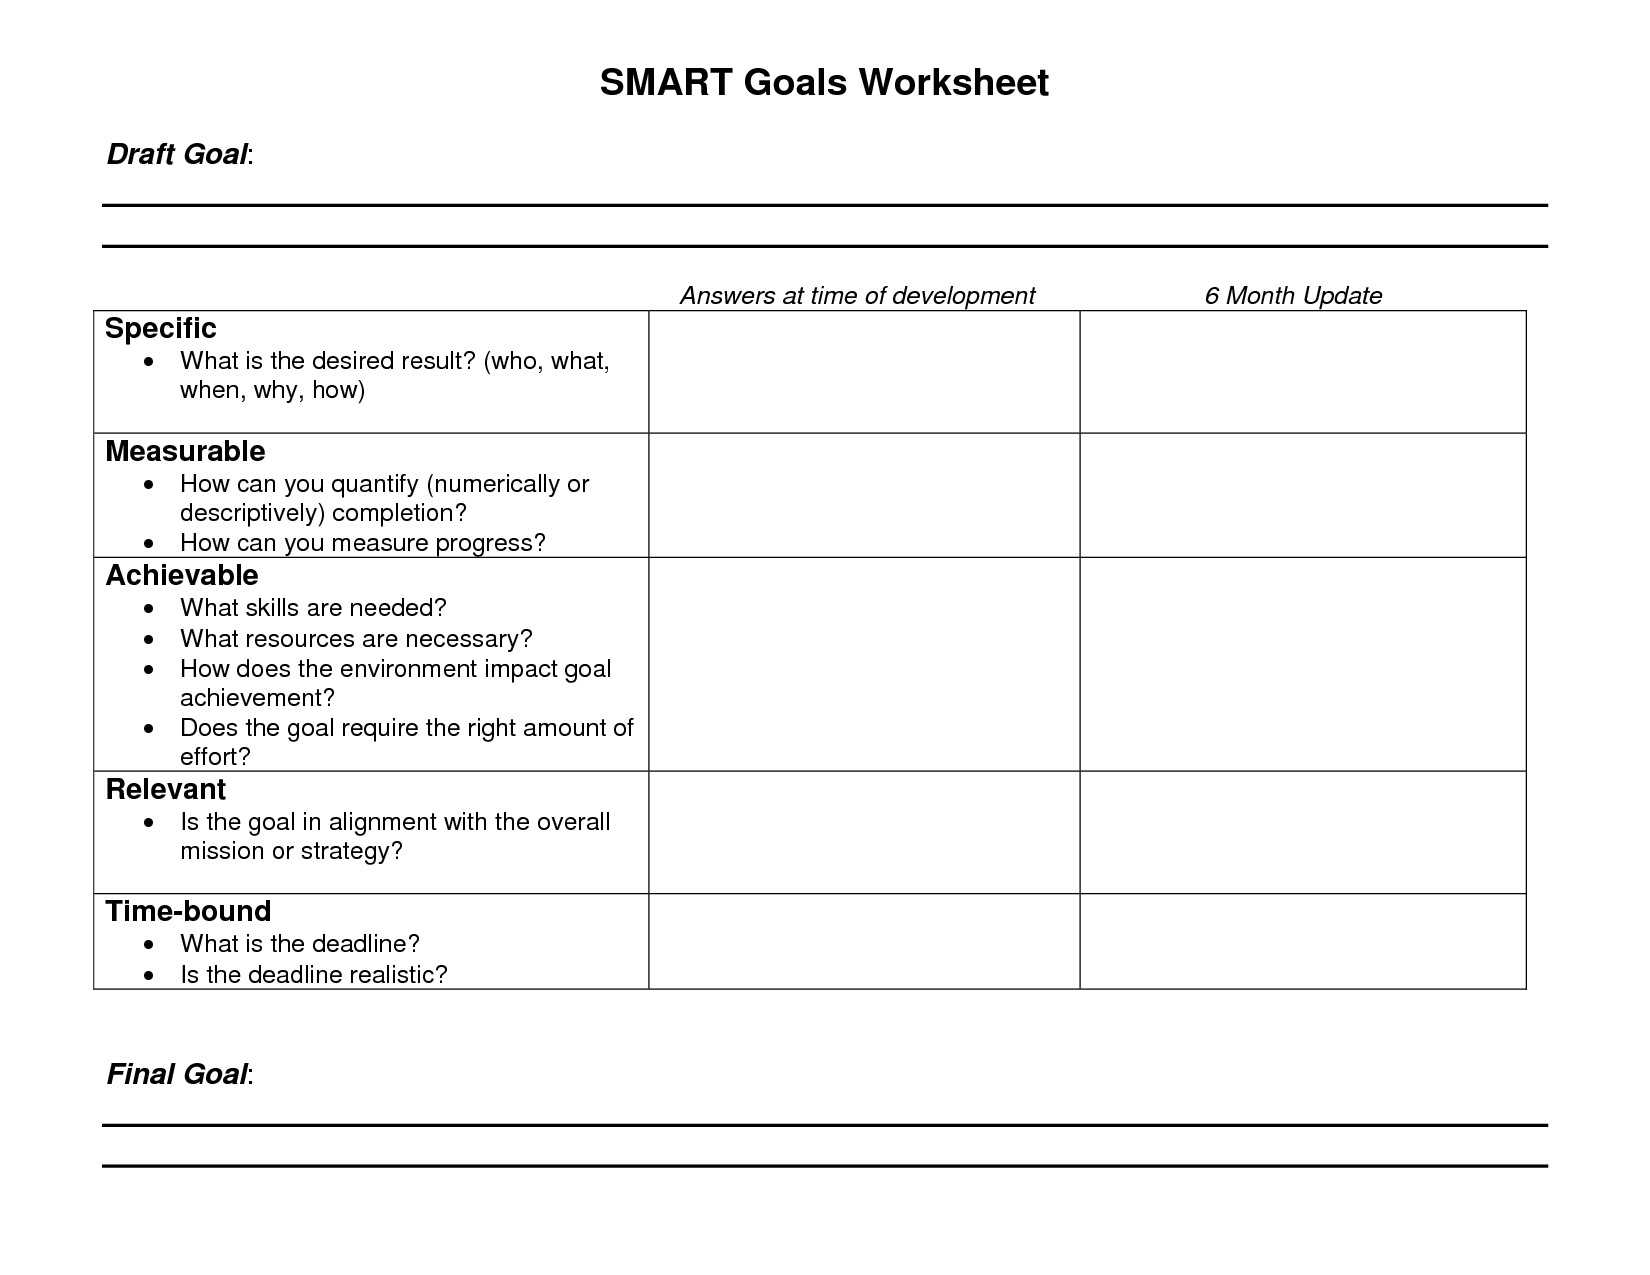 Child Anger Management Worksheets together with Smart Goals Worksheet Pdf Refrence Relationship Goals Worksheet